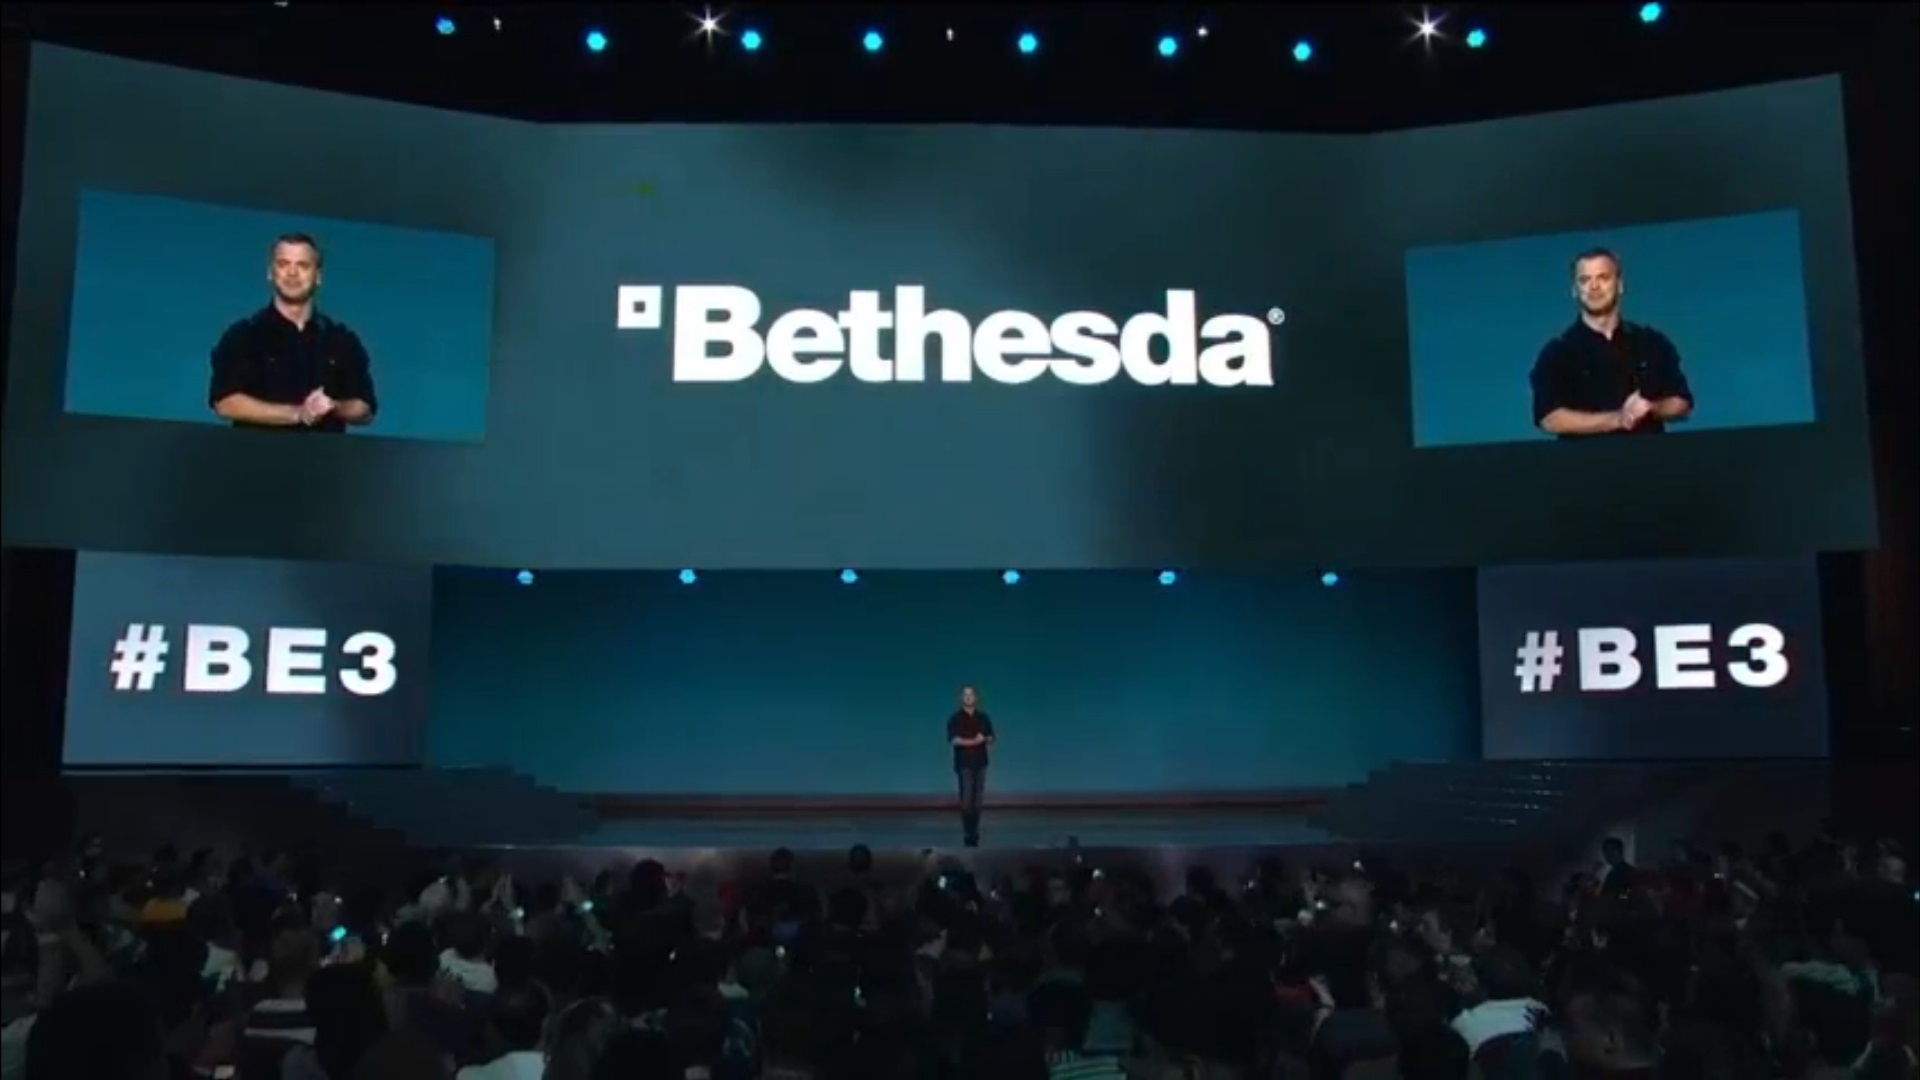 Pete Hines introduces Bethesda at E3